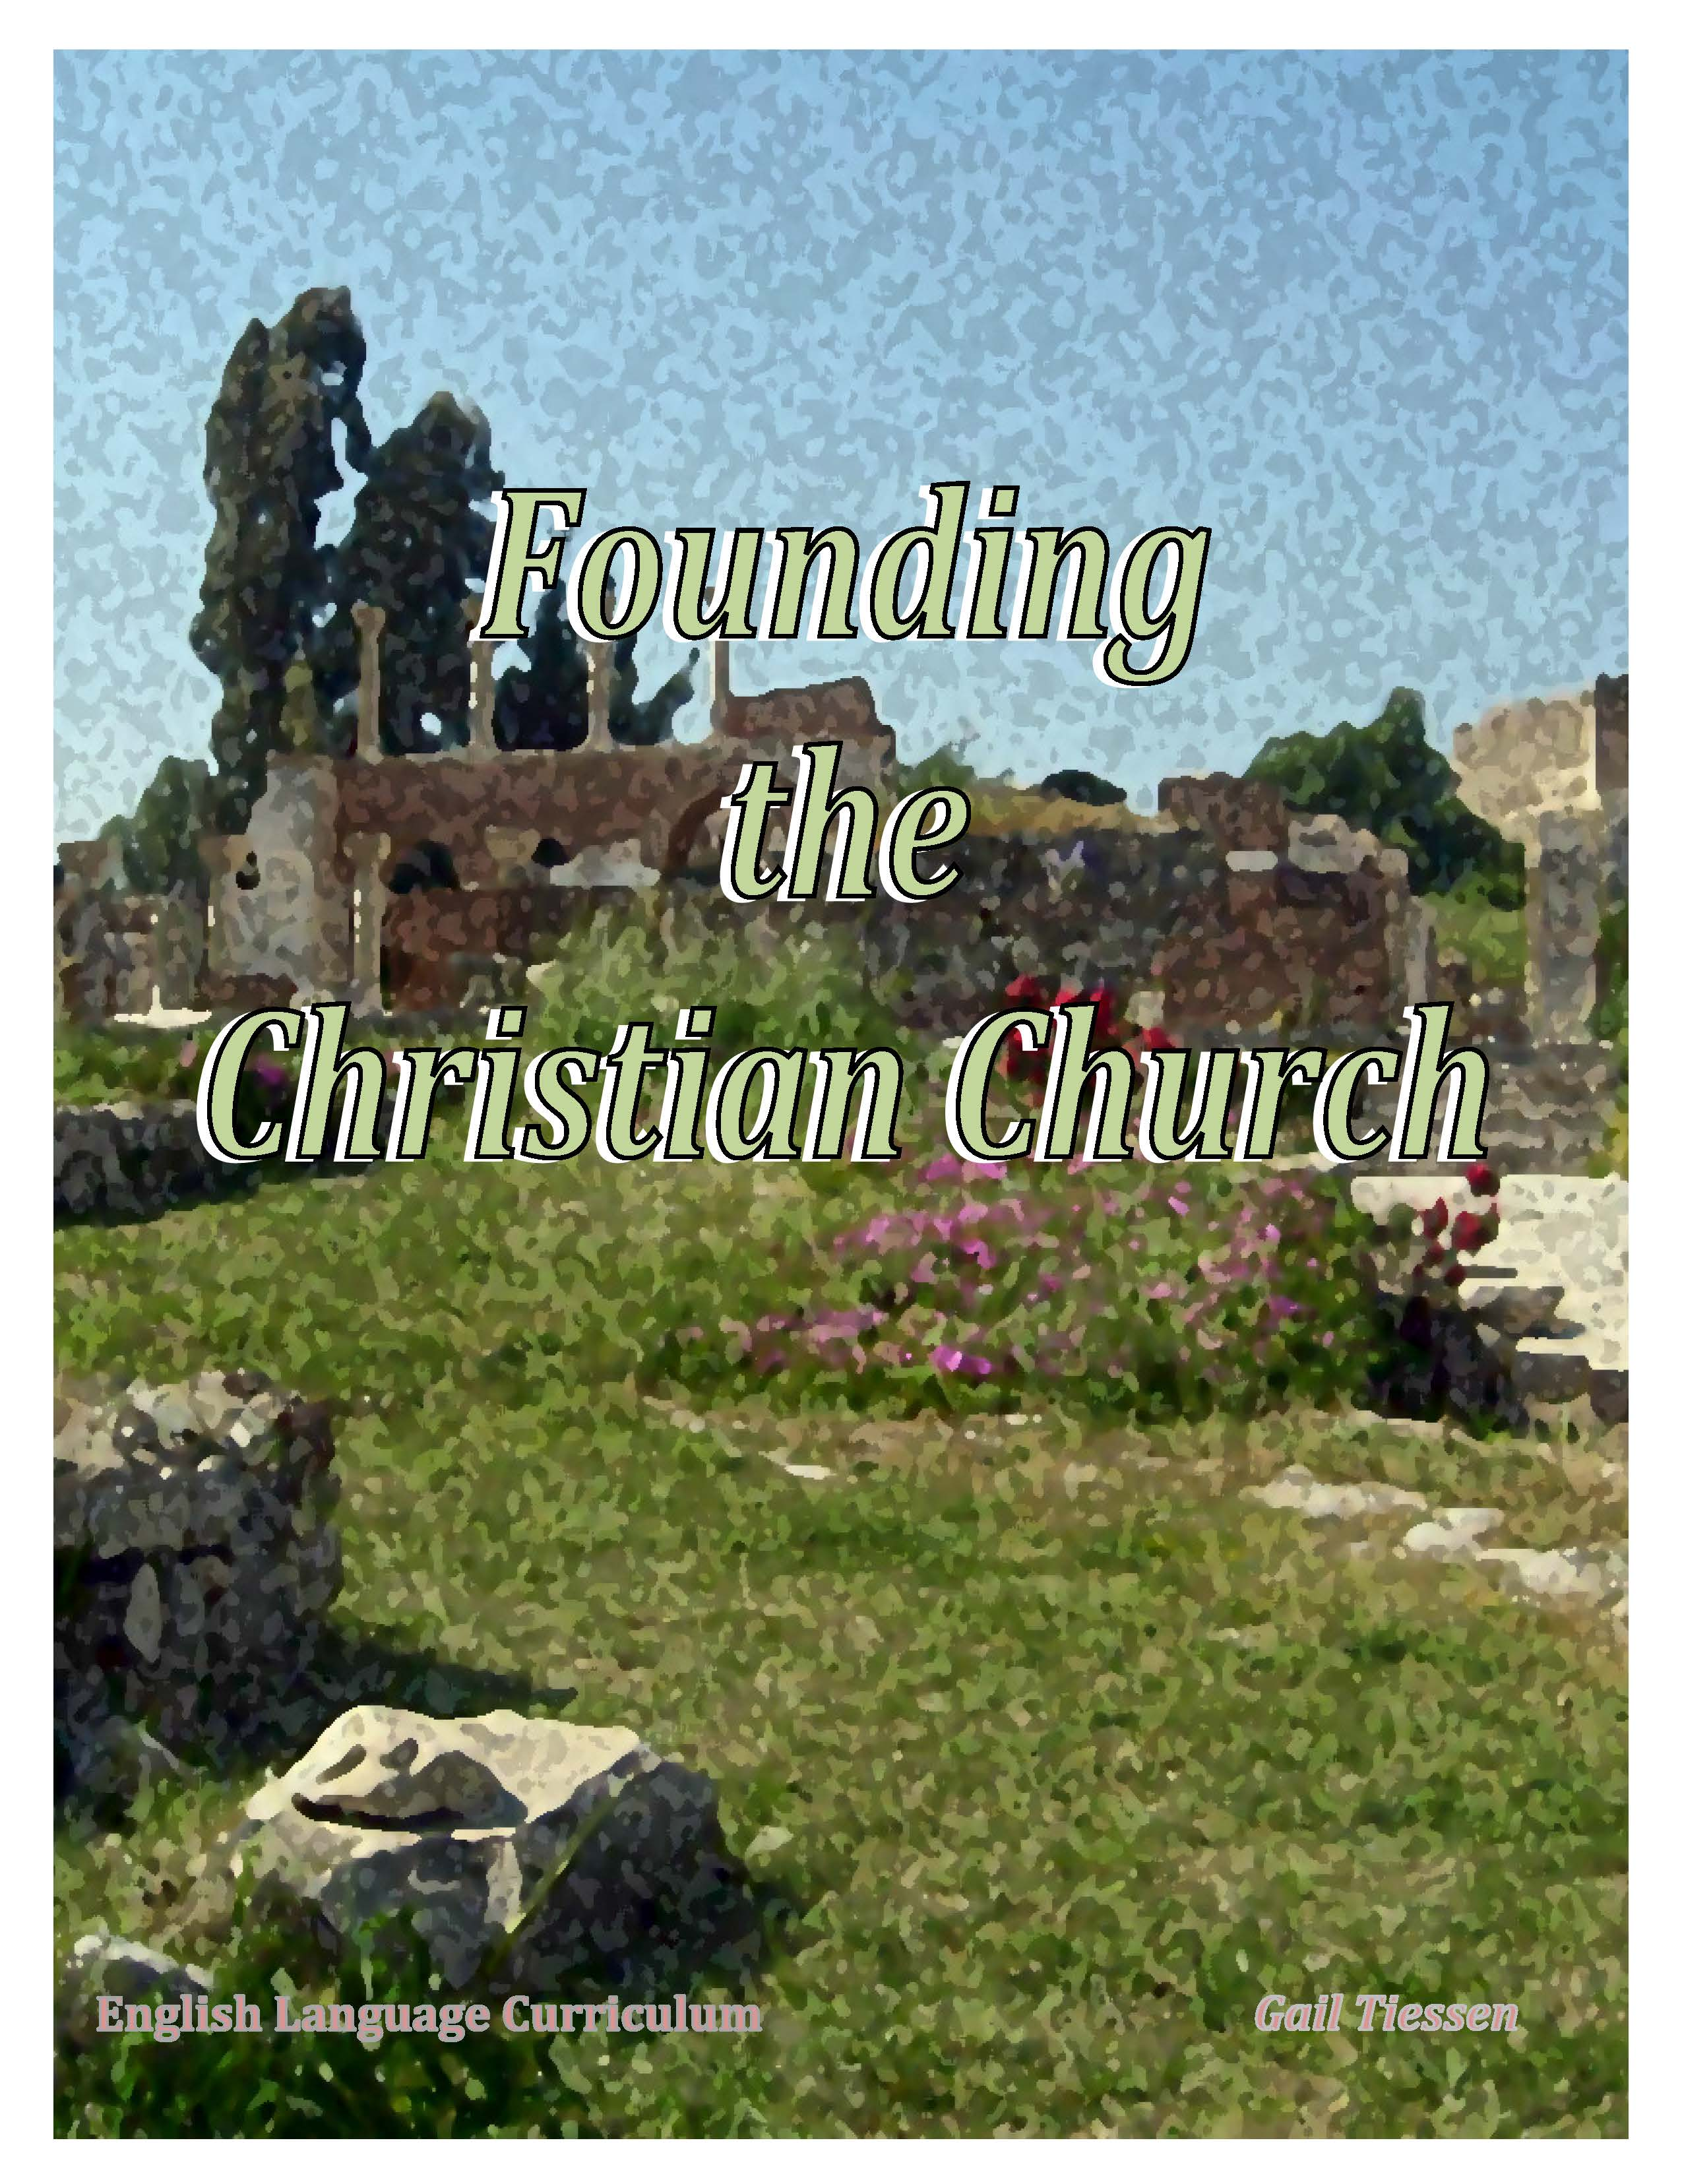 Founding the Christian Church